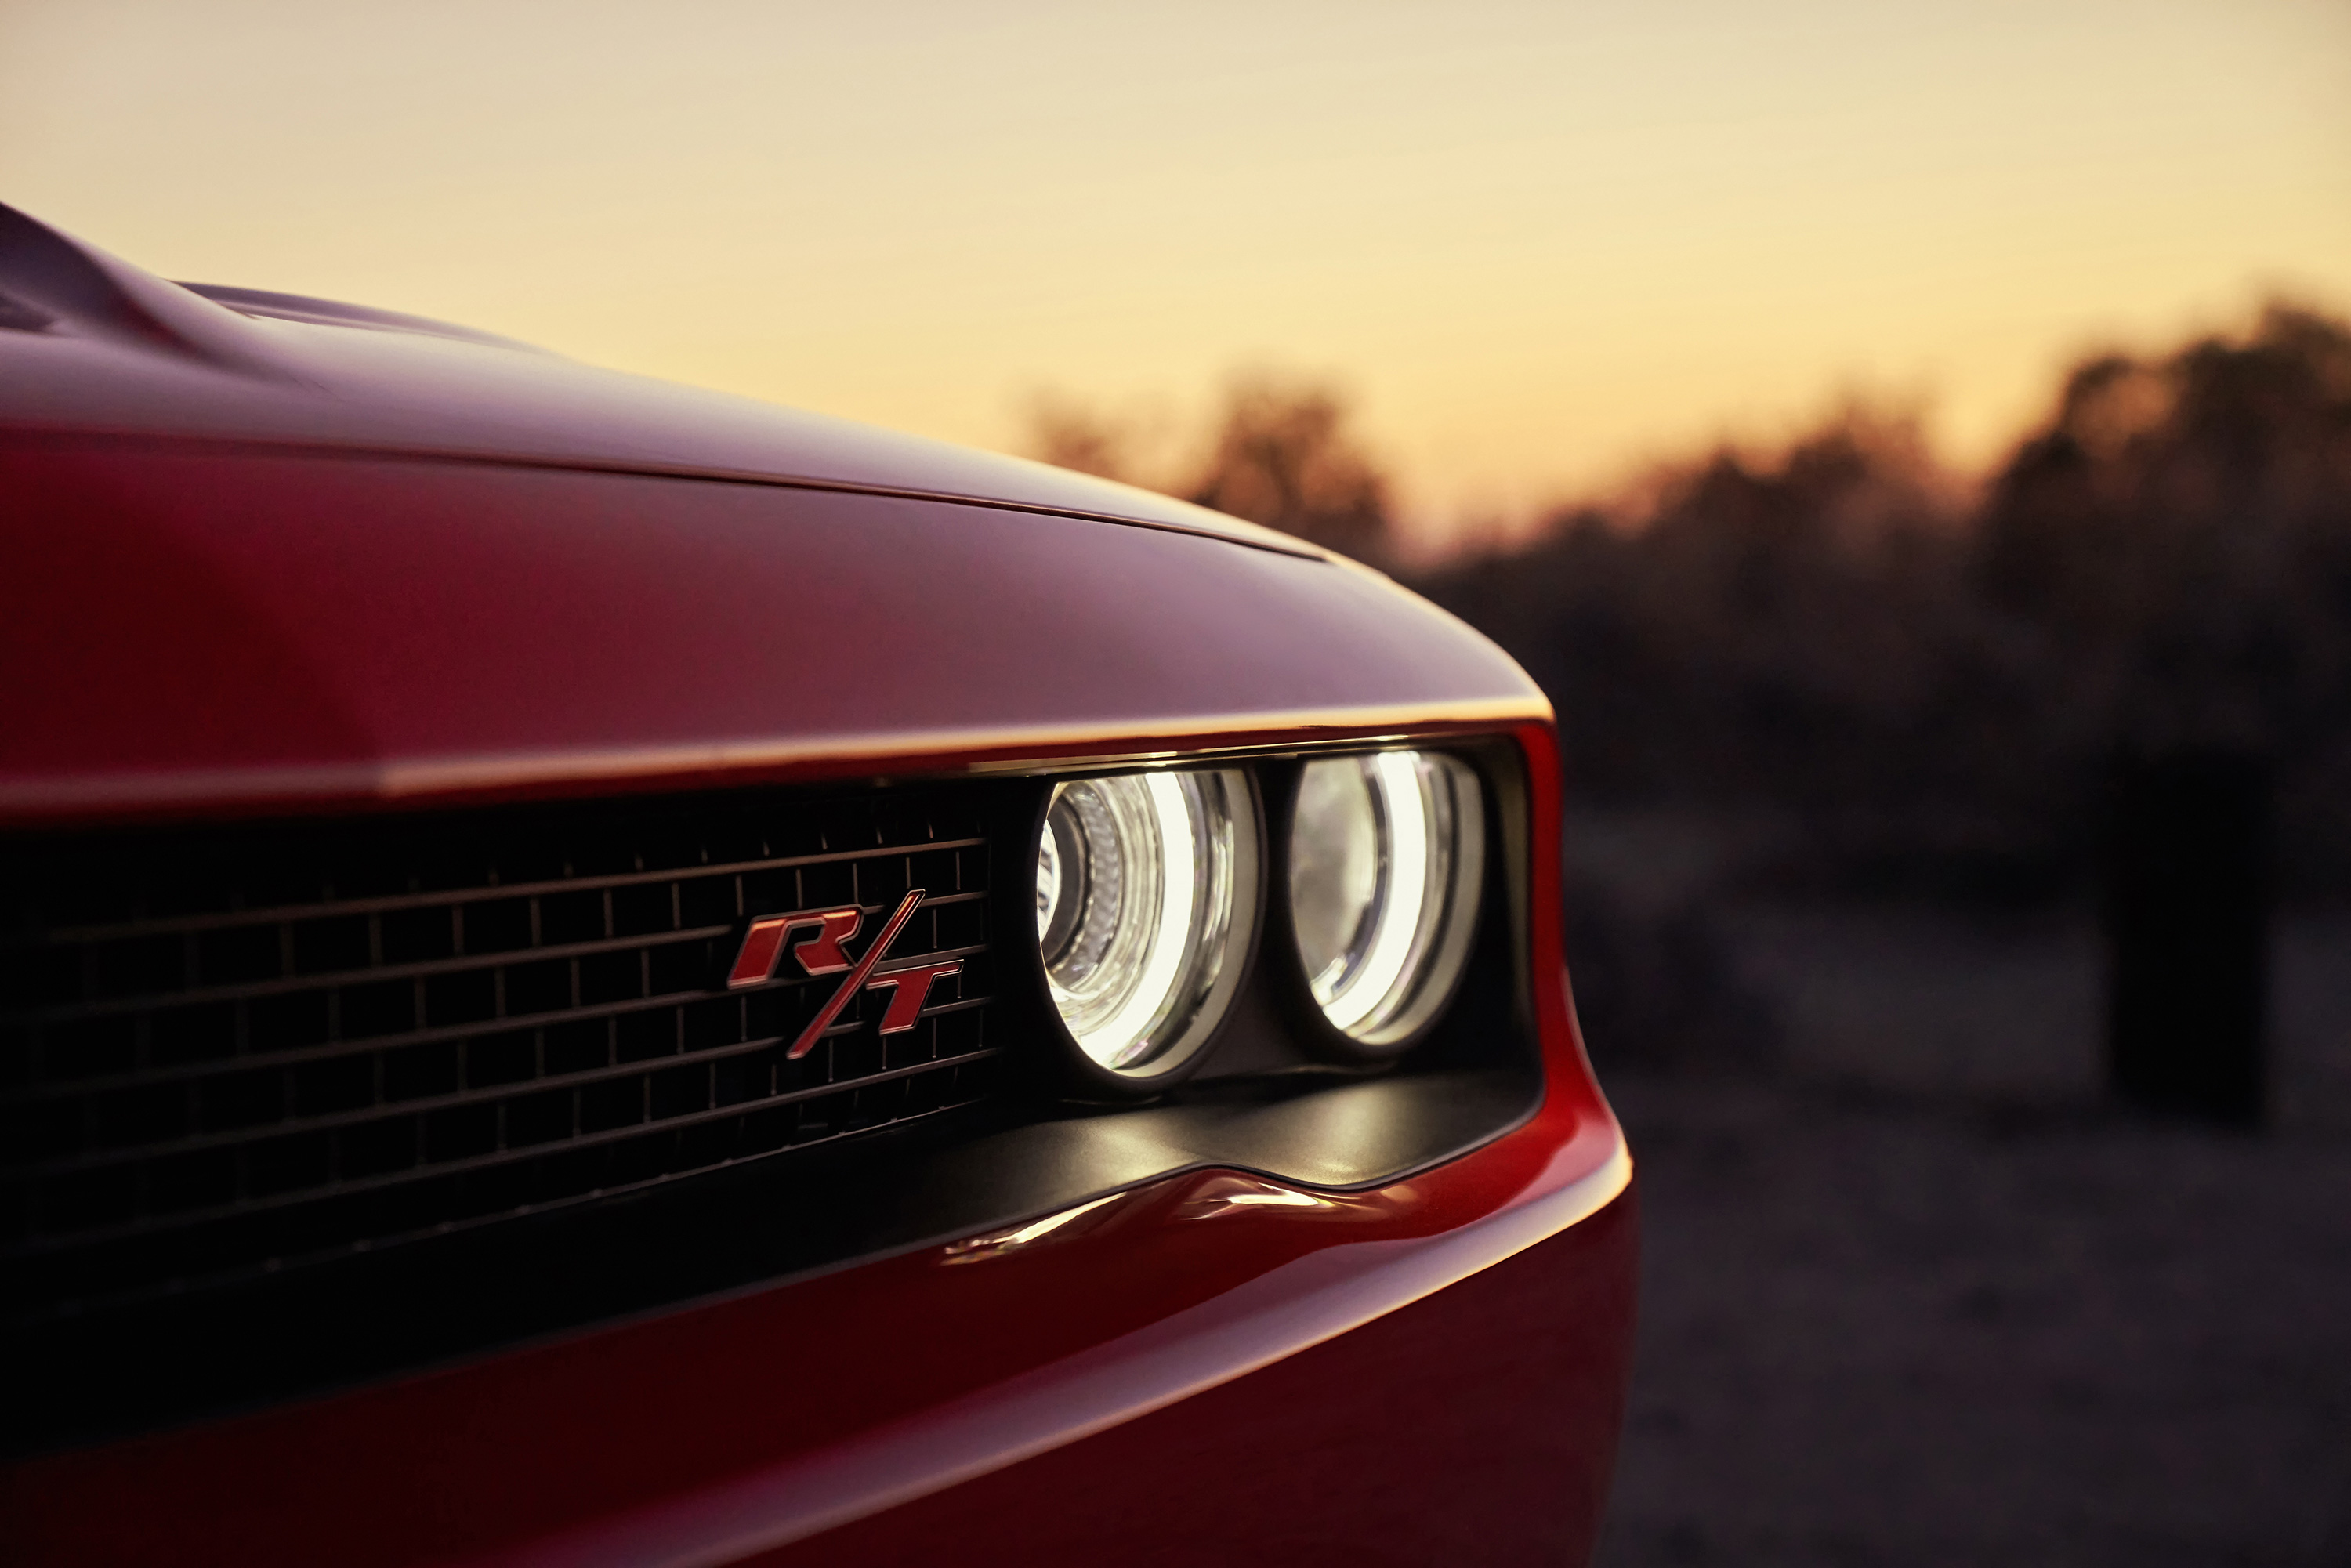 Dodge Challenger Srt Hellcat Lights Hd Cars 4k Wallpapers Images Backgrounds Photos And Pictures